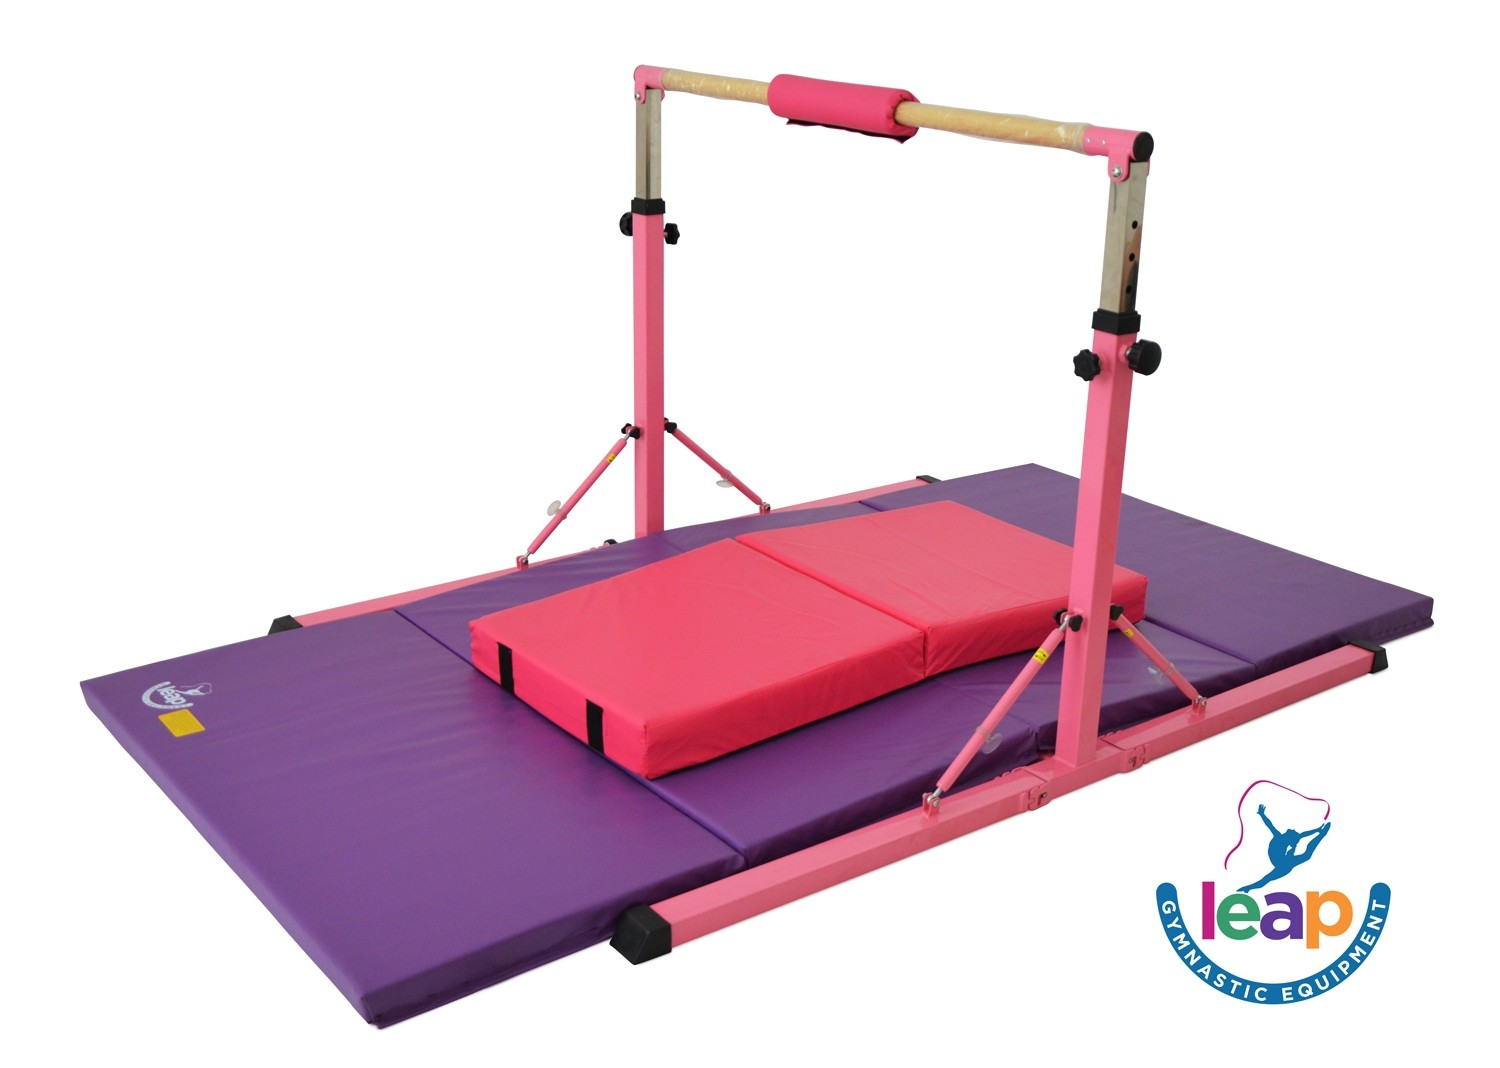 Leap Gymnastics High Bar Kit for Kids with Matts included